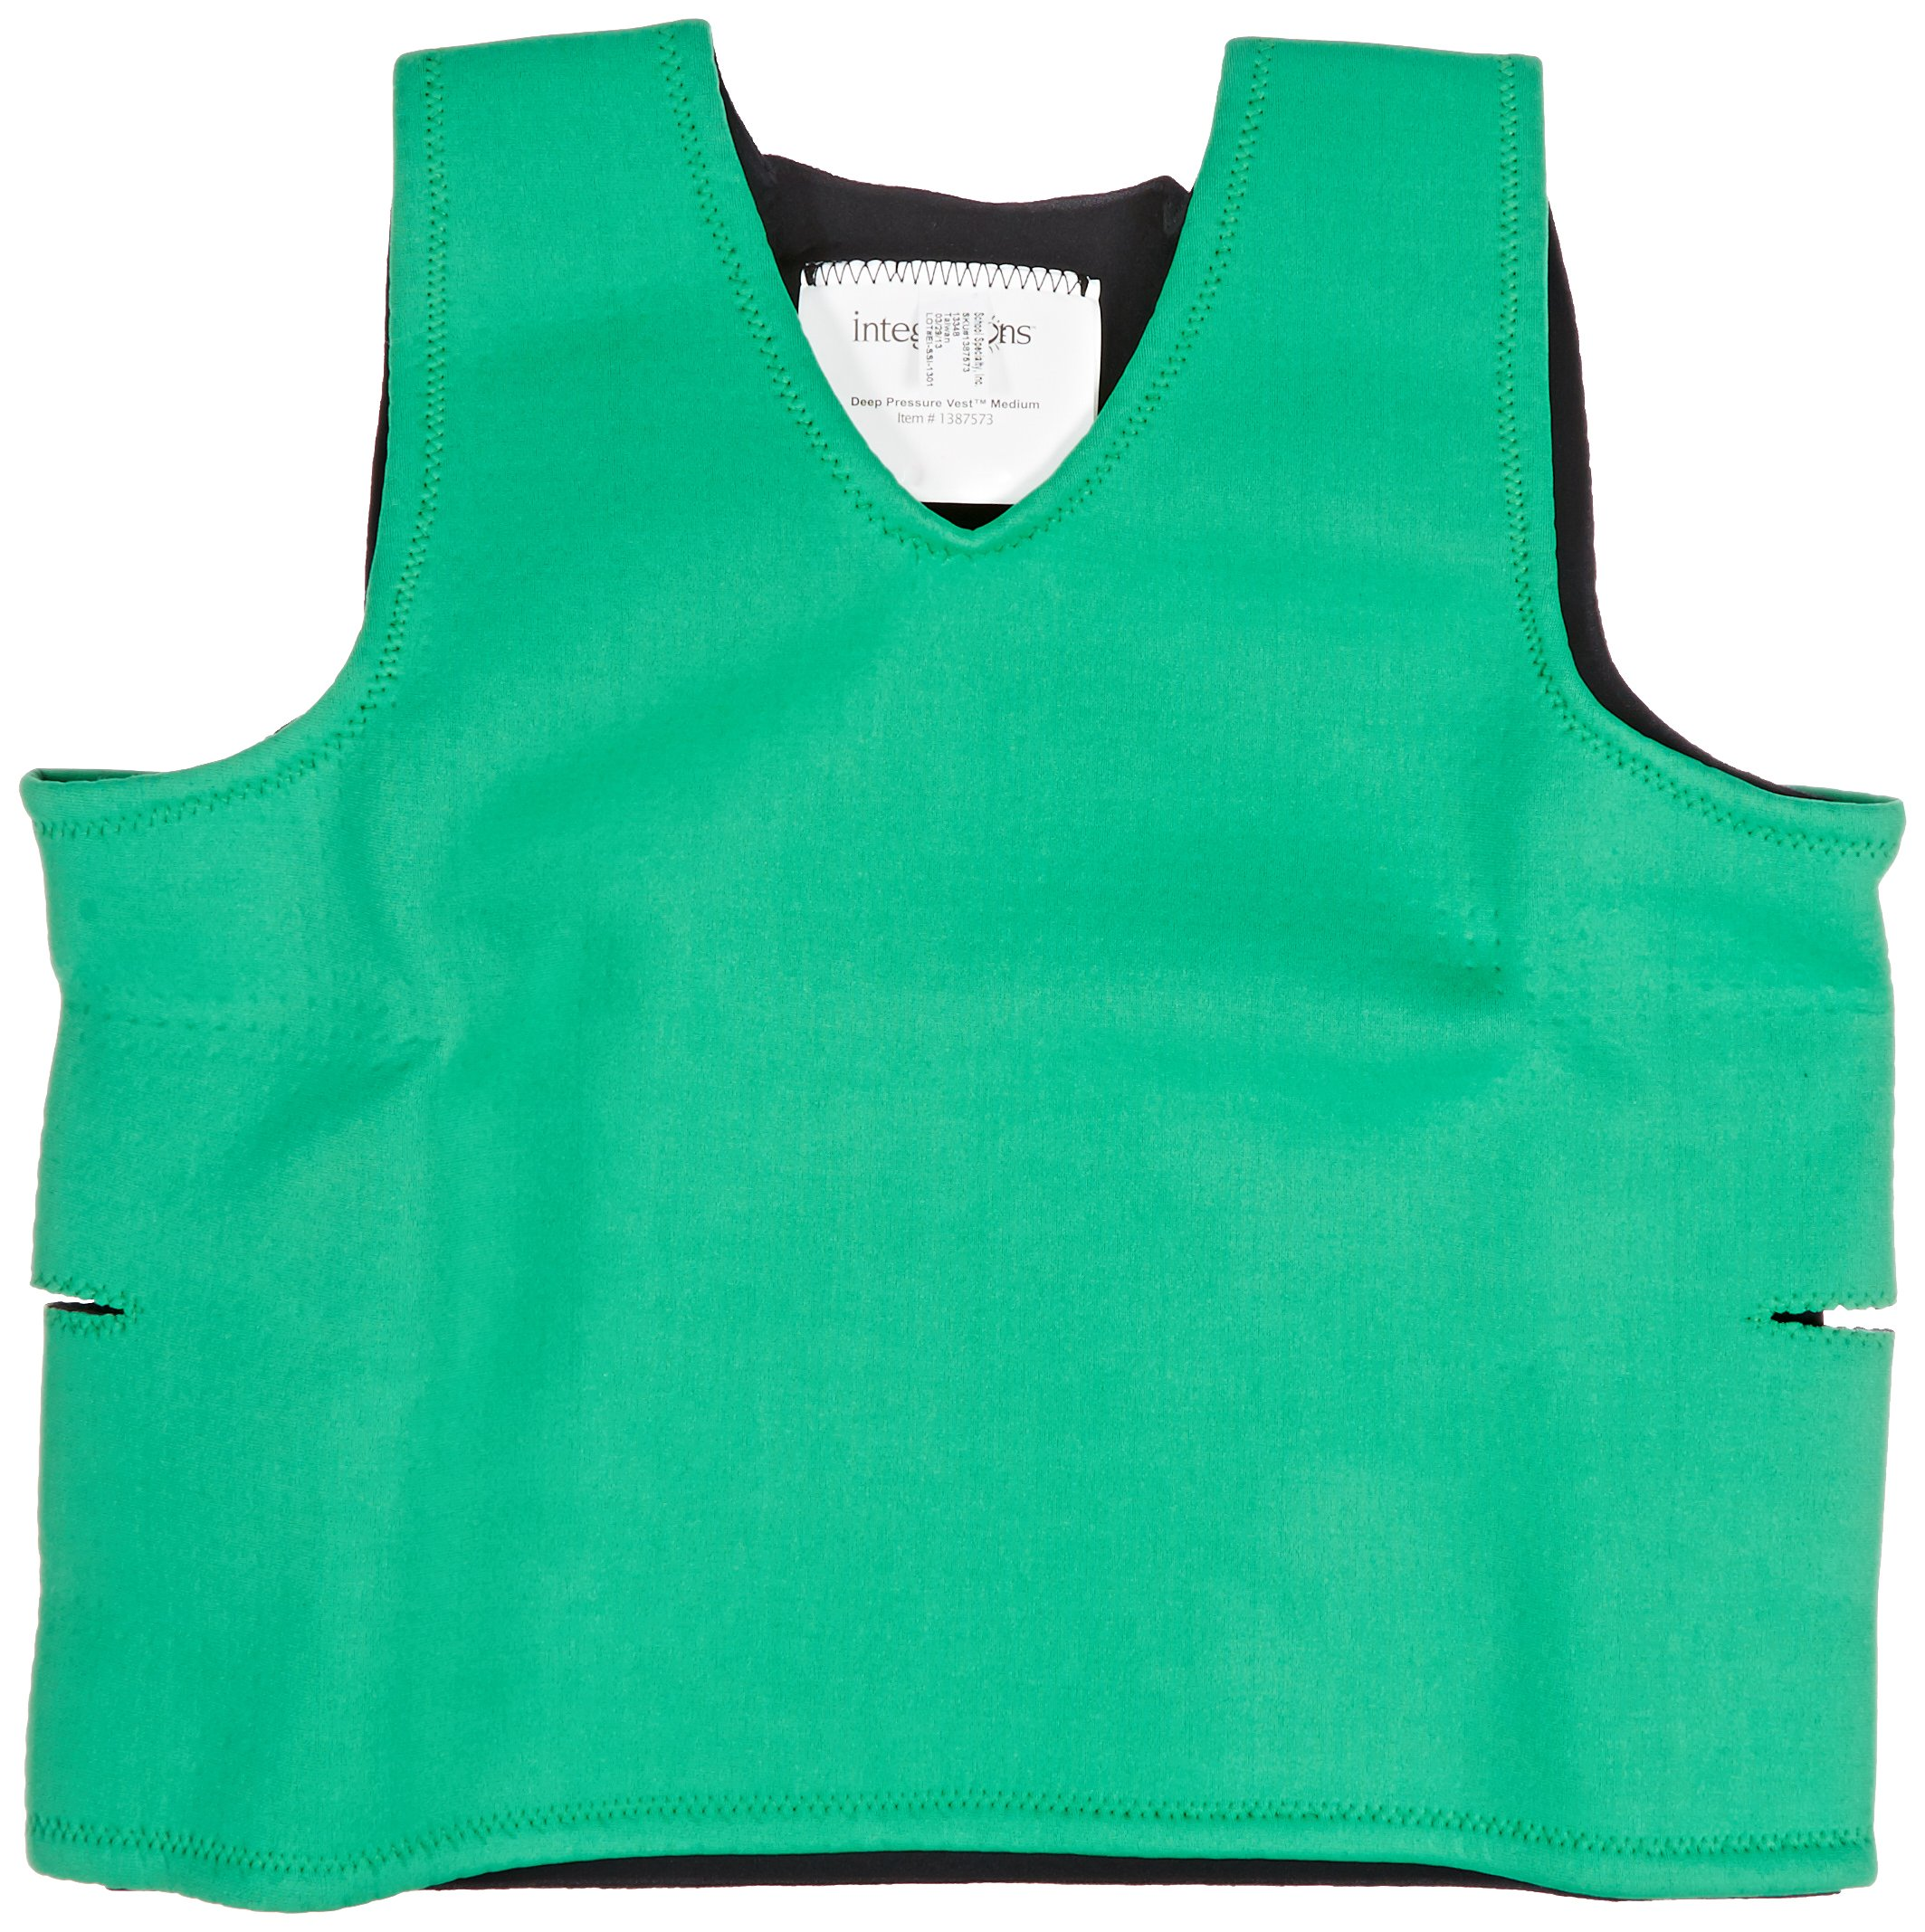 Abilitations Integrations Deep Pressure Sensory Vest, Medium, Green by Abilitations